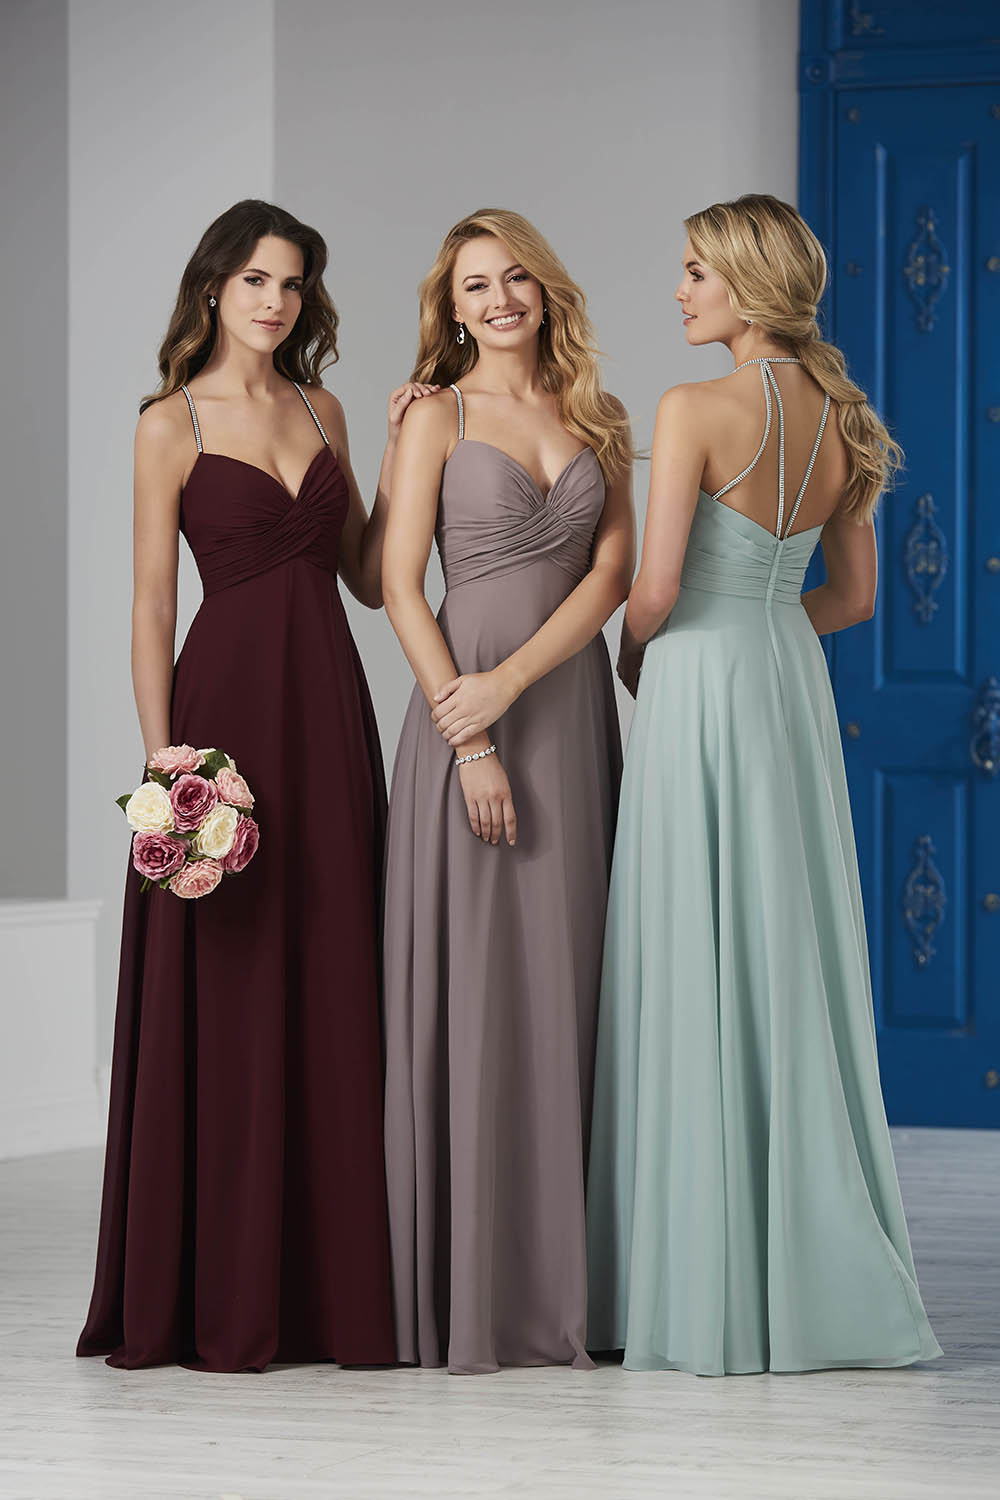 bridesmaid-dresses-jacquelin-bridals-canada-26179